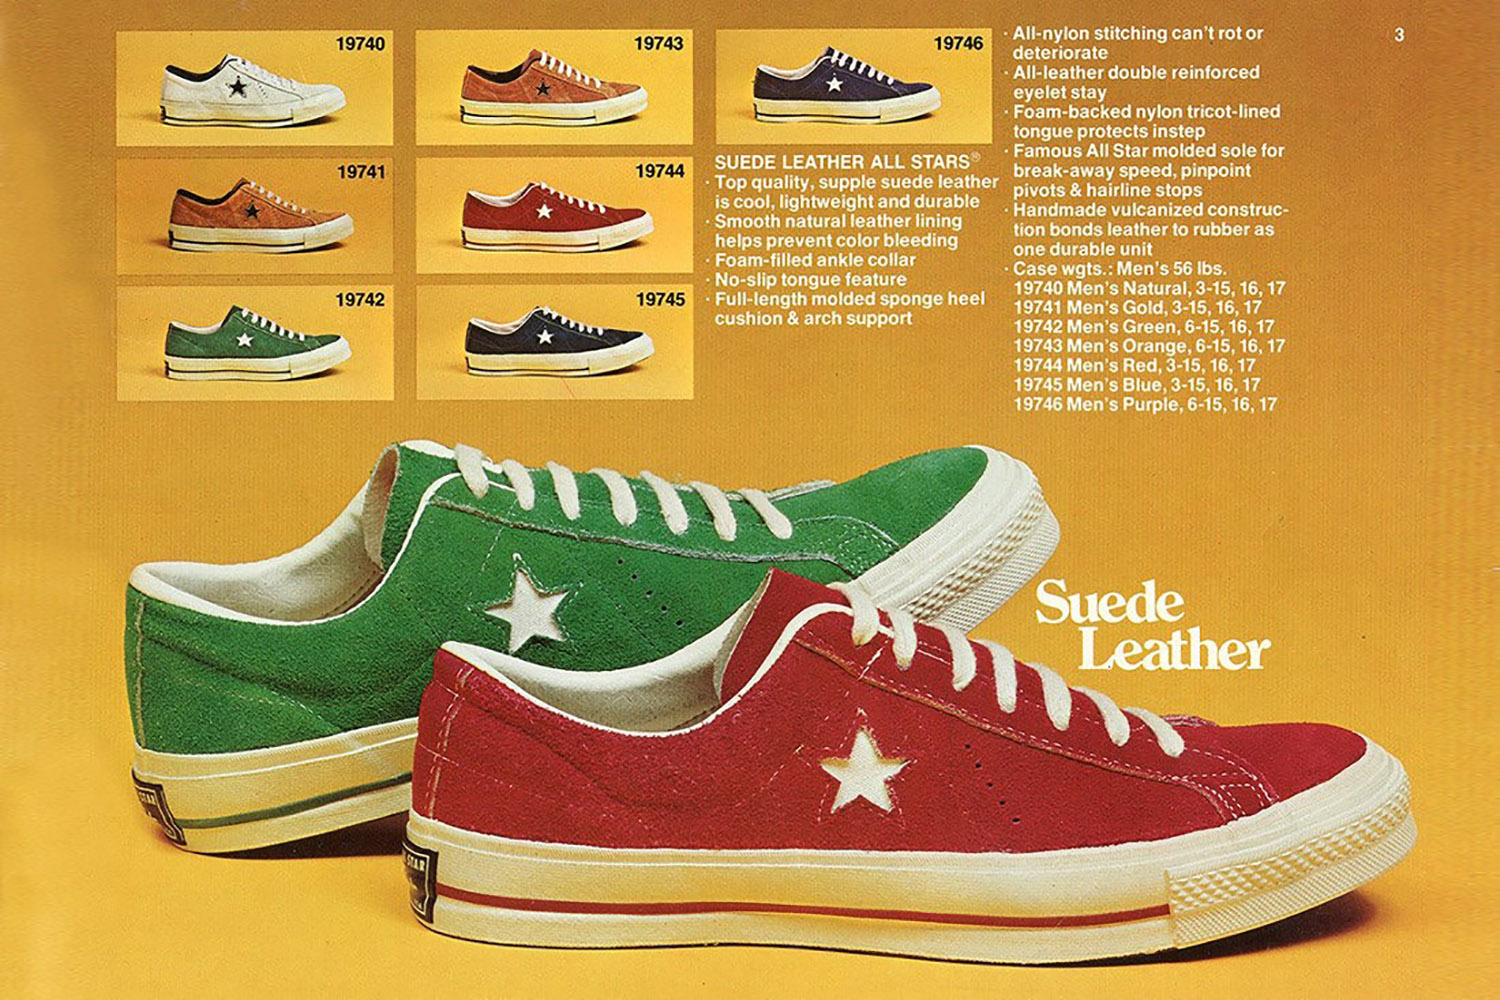 039b0ab64acb05 The History Behind the Converse One Star